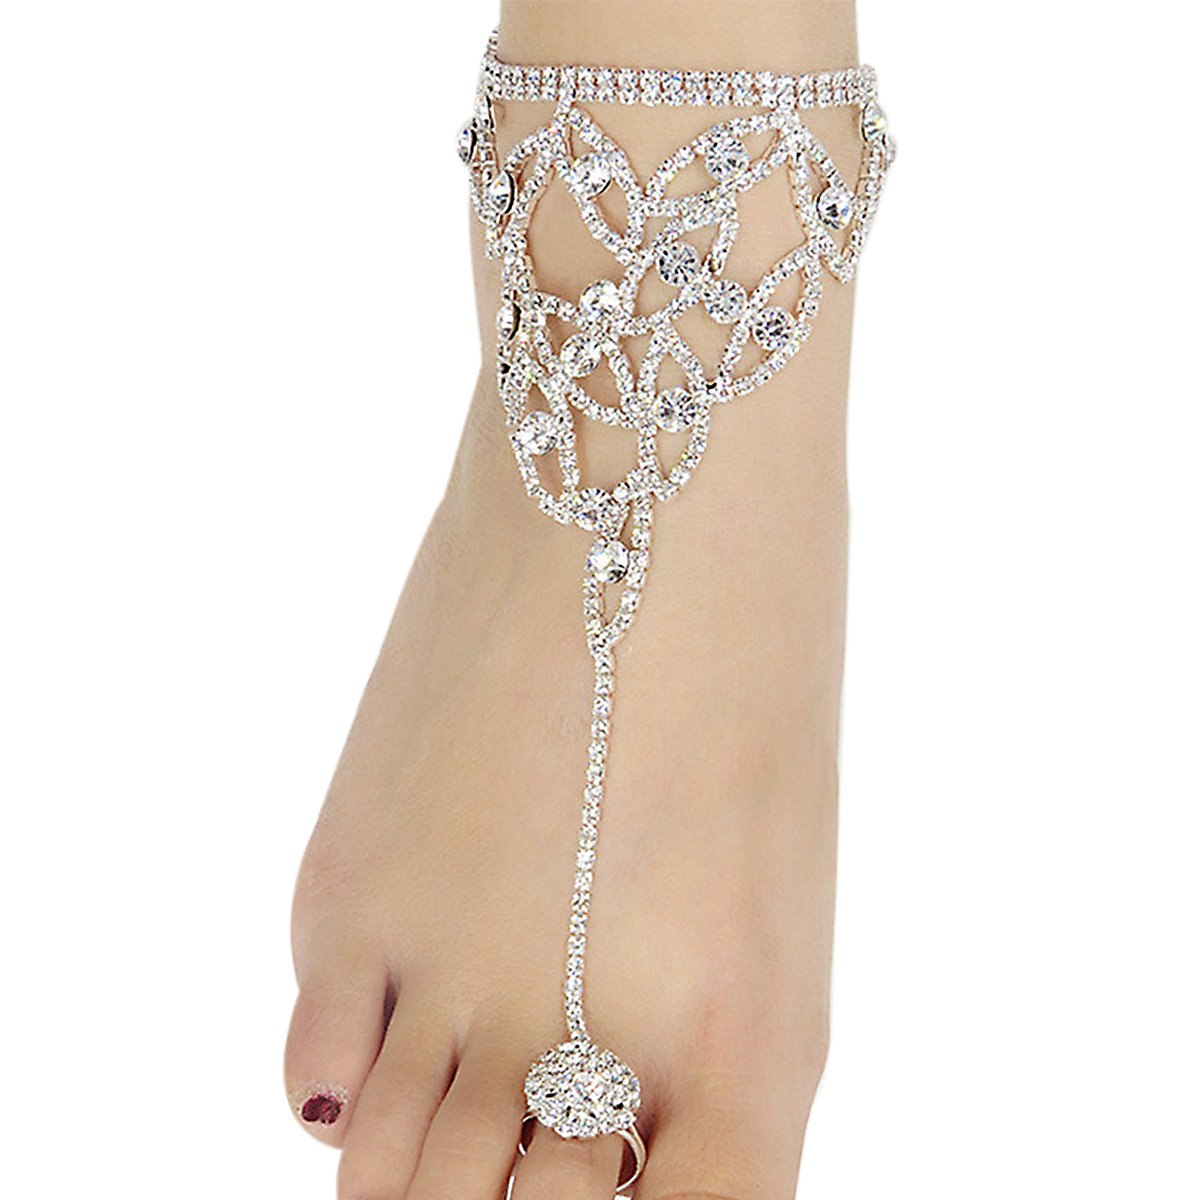 L'vow Crystal Foot Jewelry Anklet Bracelet With Toe Ring Beach Wedding Jewelry L'vow bracelet-3